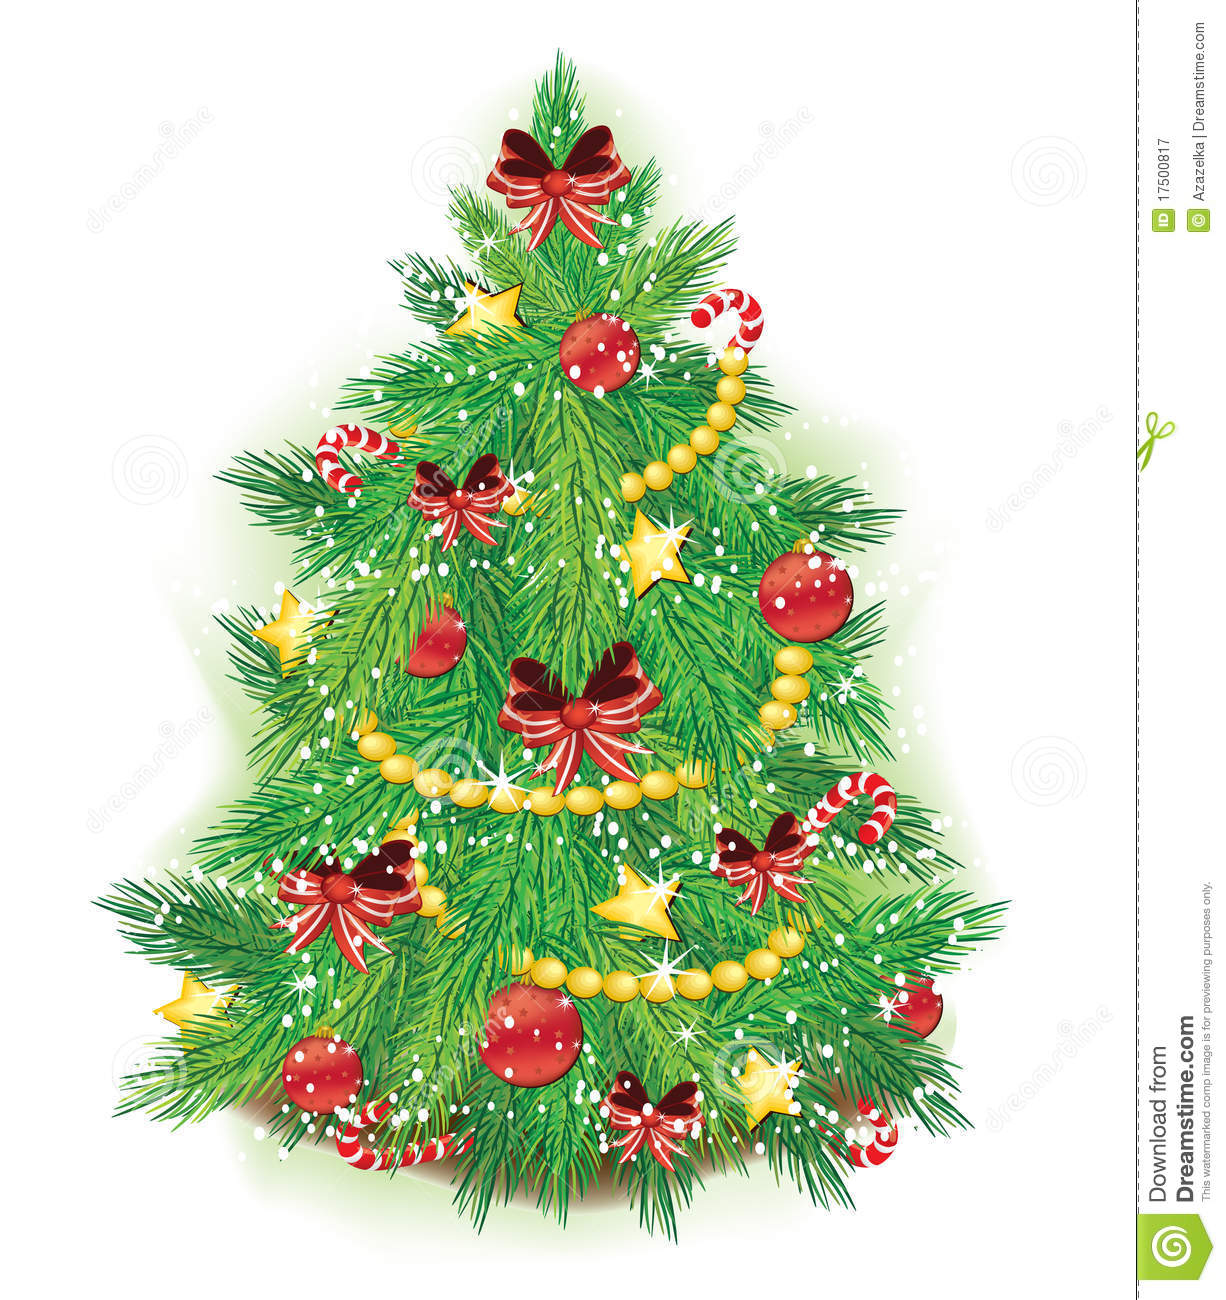 Xmas tree stock illustration. Illustration of festive ...